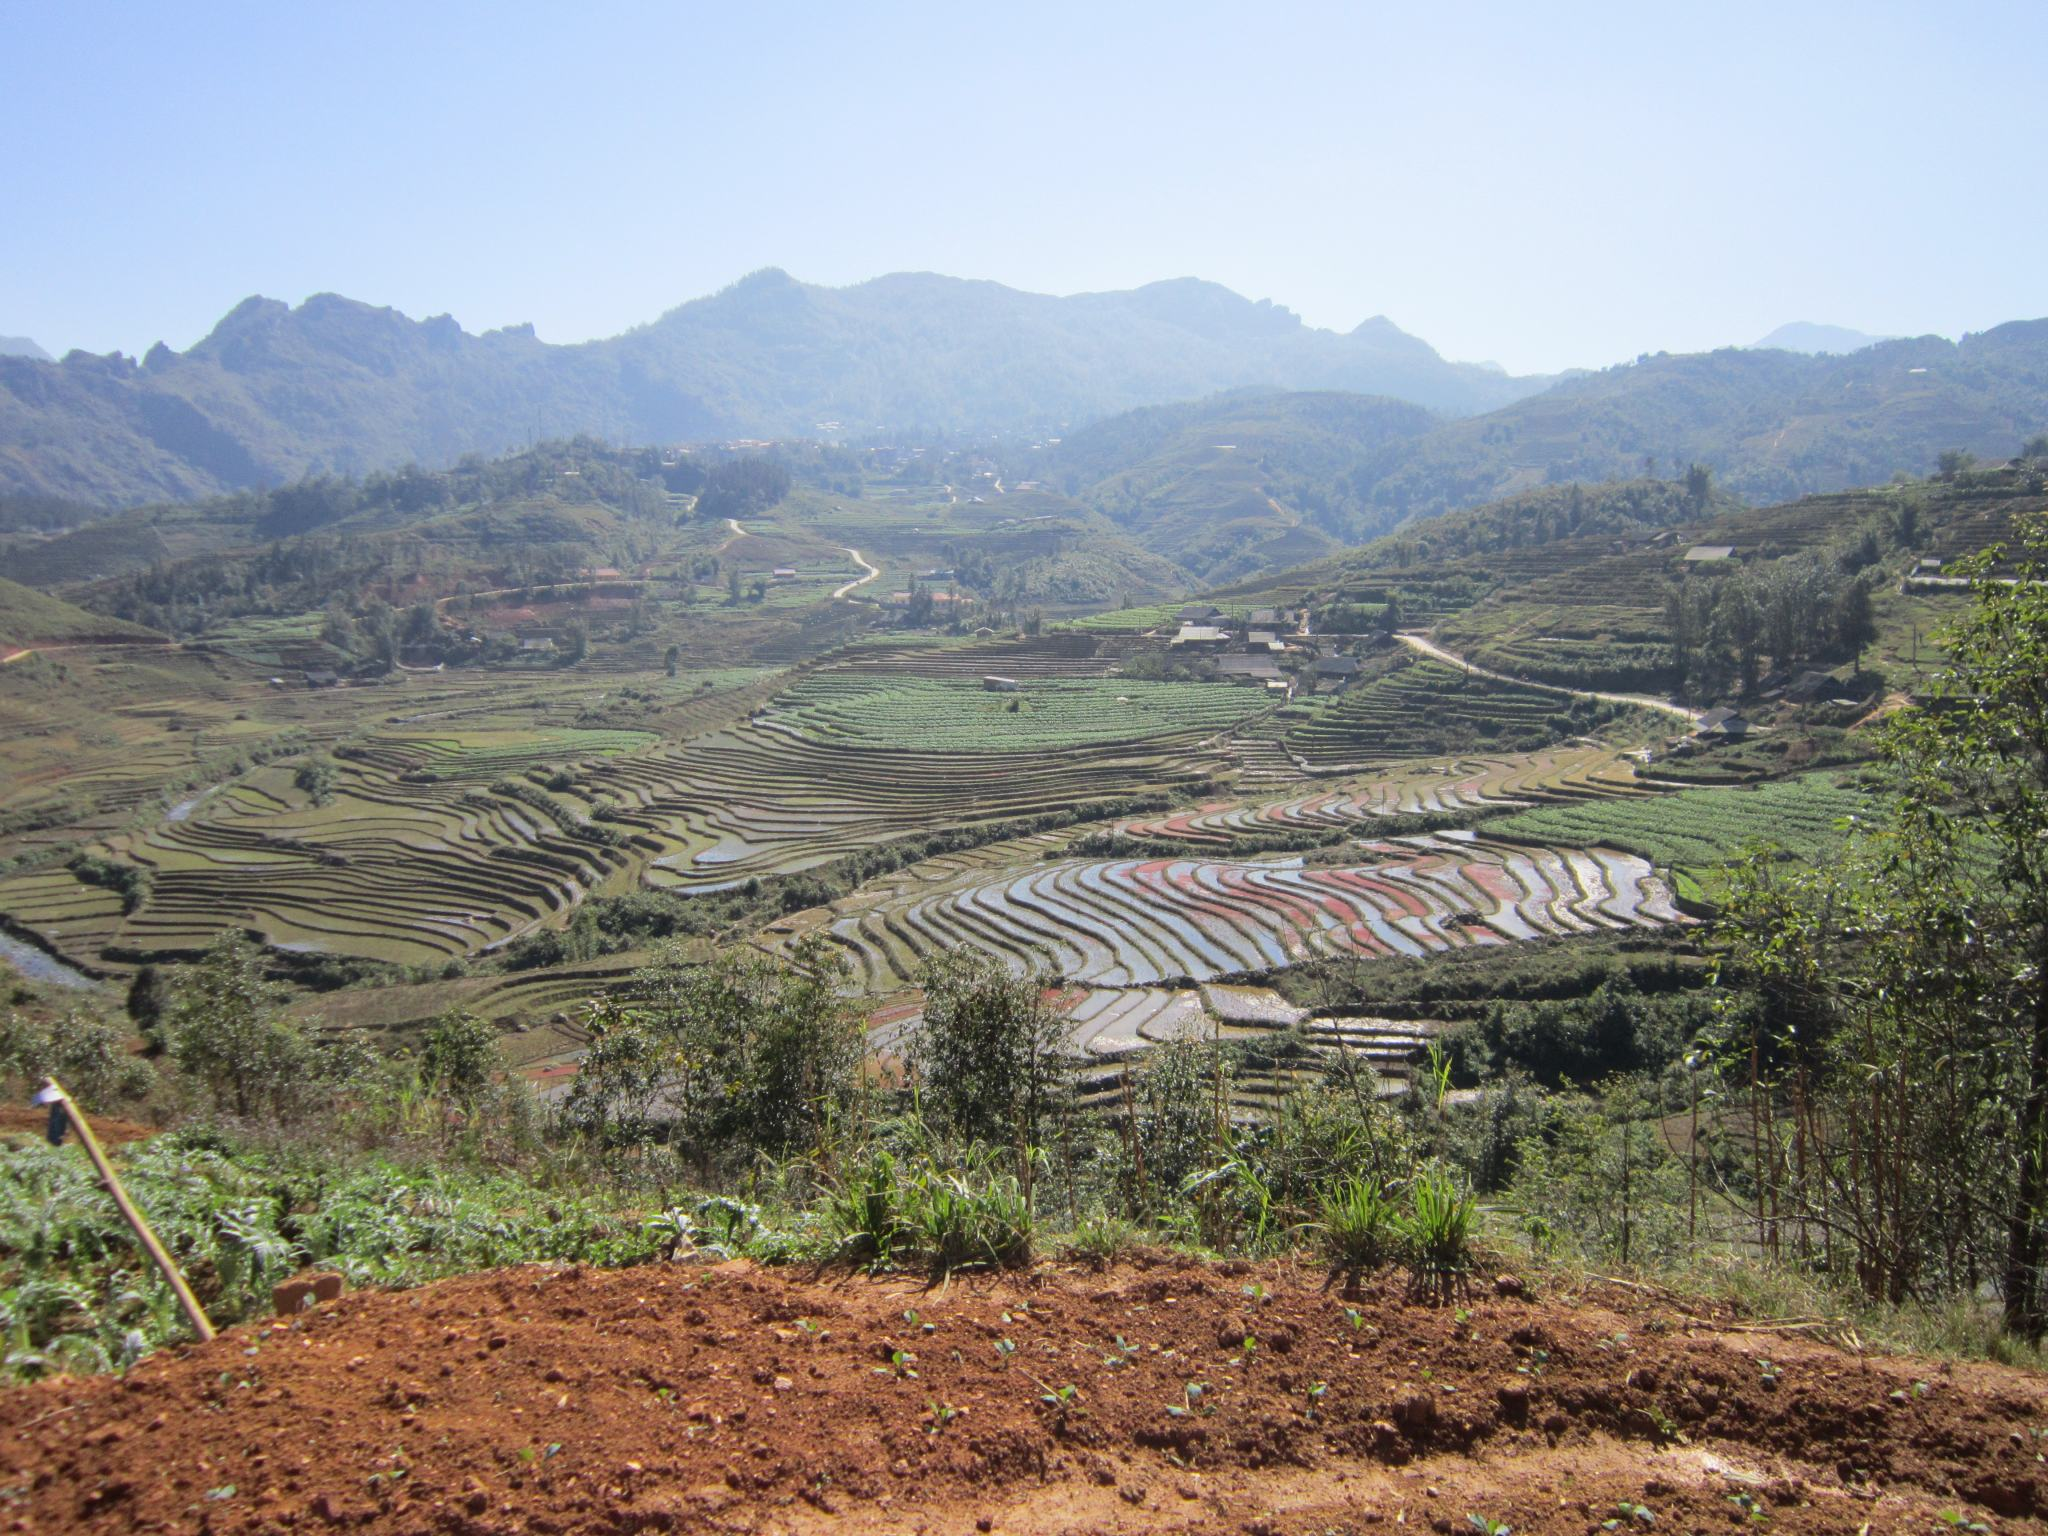 Vietnam Backpacking Itinerary - A Month Long Route